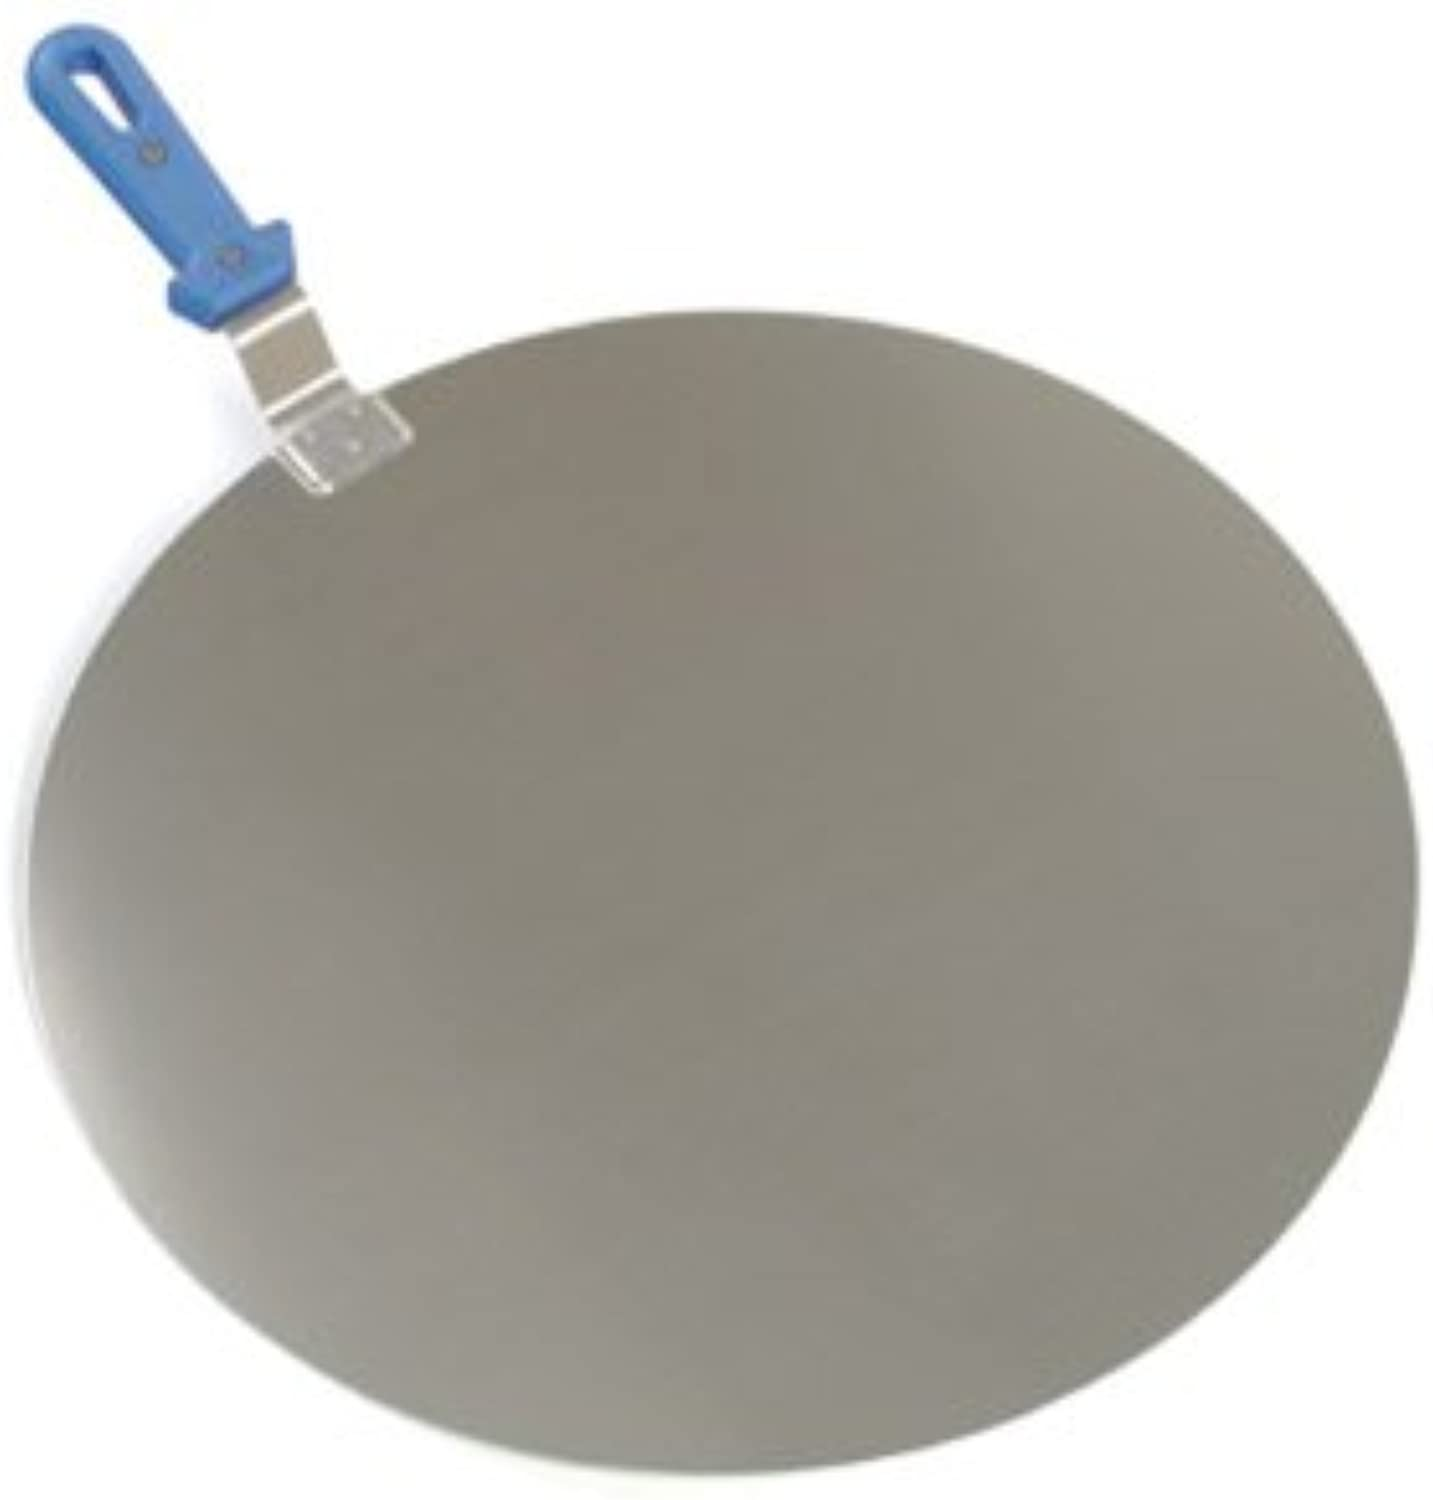 Paderno World Cuisine 12-1 2-Inch Aluminum Pizza Spatula with Short Handle